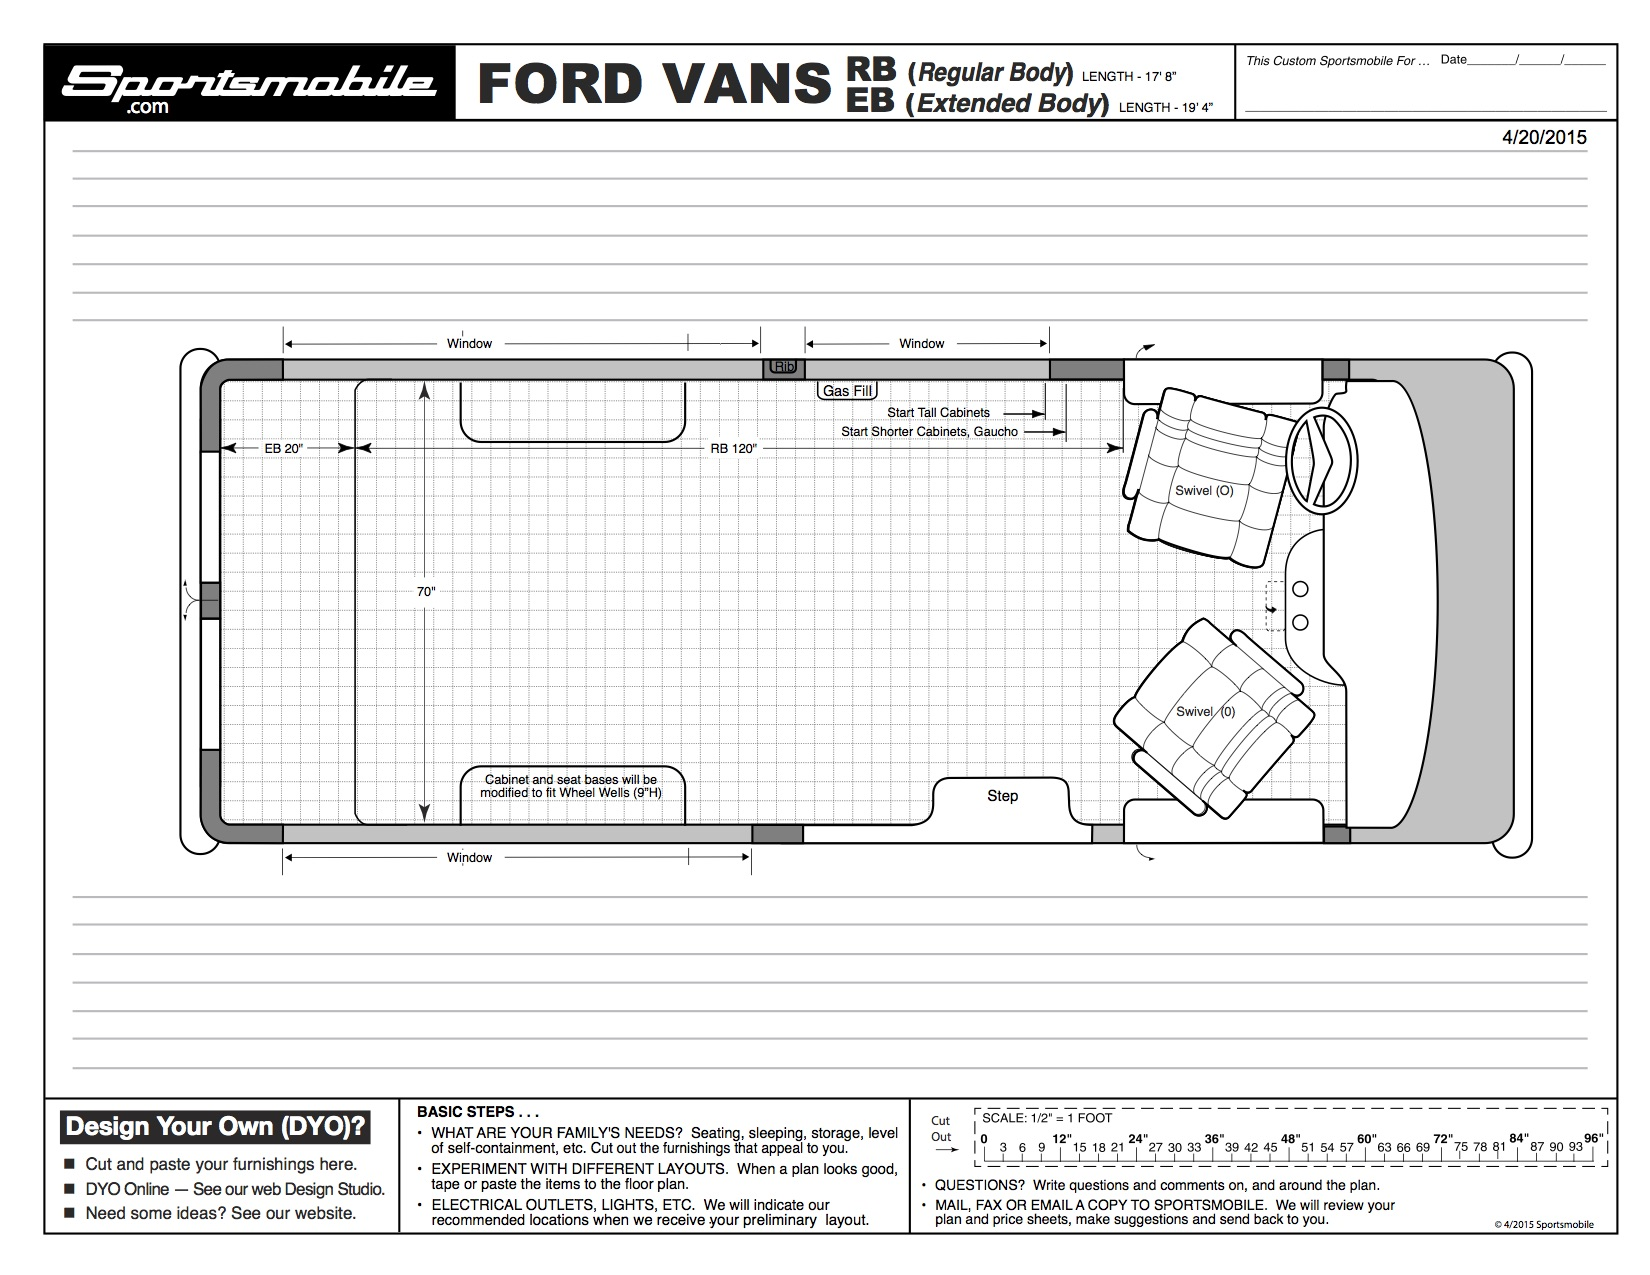 hight resolution of ford van rb and eb dimensions ford van rb and eb dimensions jpg1650 1275 406 kb